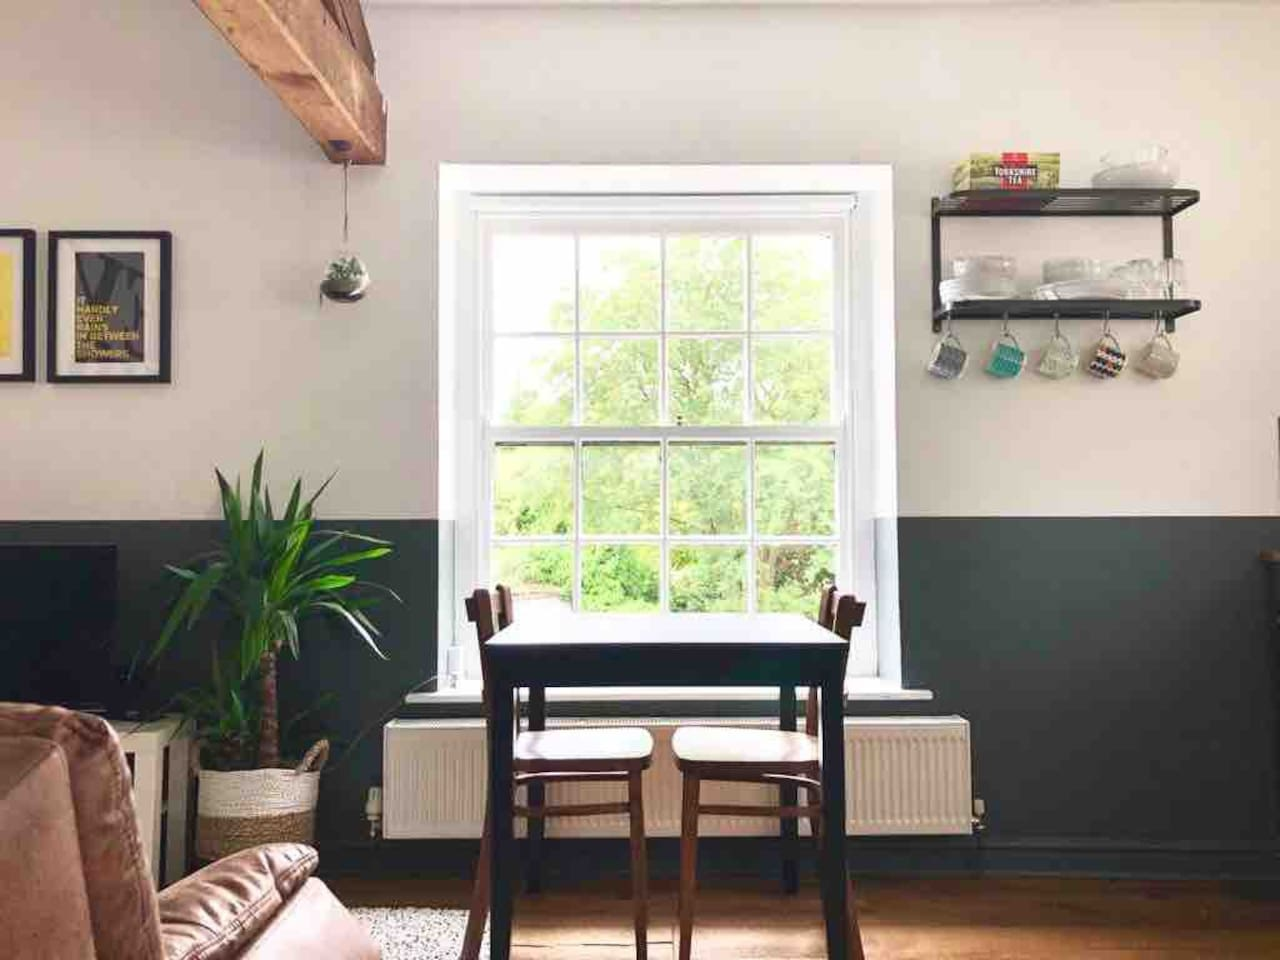 Stable Top is a one bedroom apartment located at first floor level, converted from a detached historic stable building. Close to the centre of the vibrant market town of Settle, it is perfect for a couple looking to explore the Yorkshire Dales.